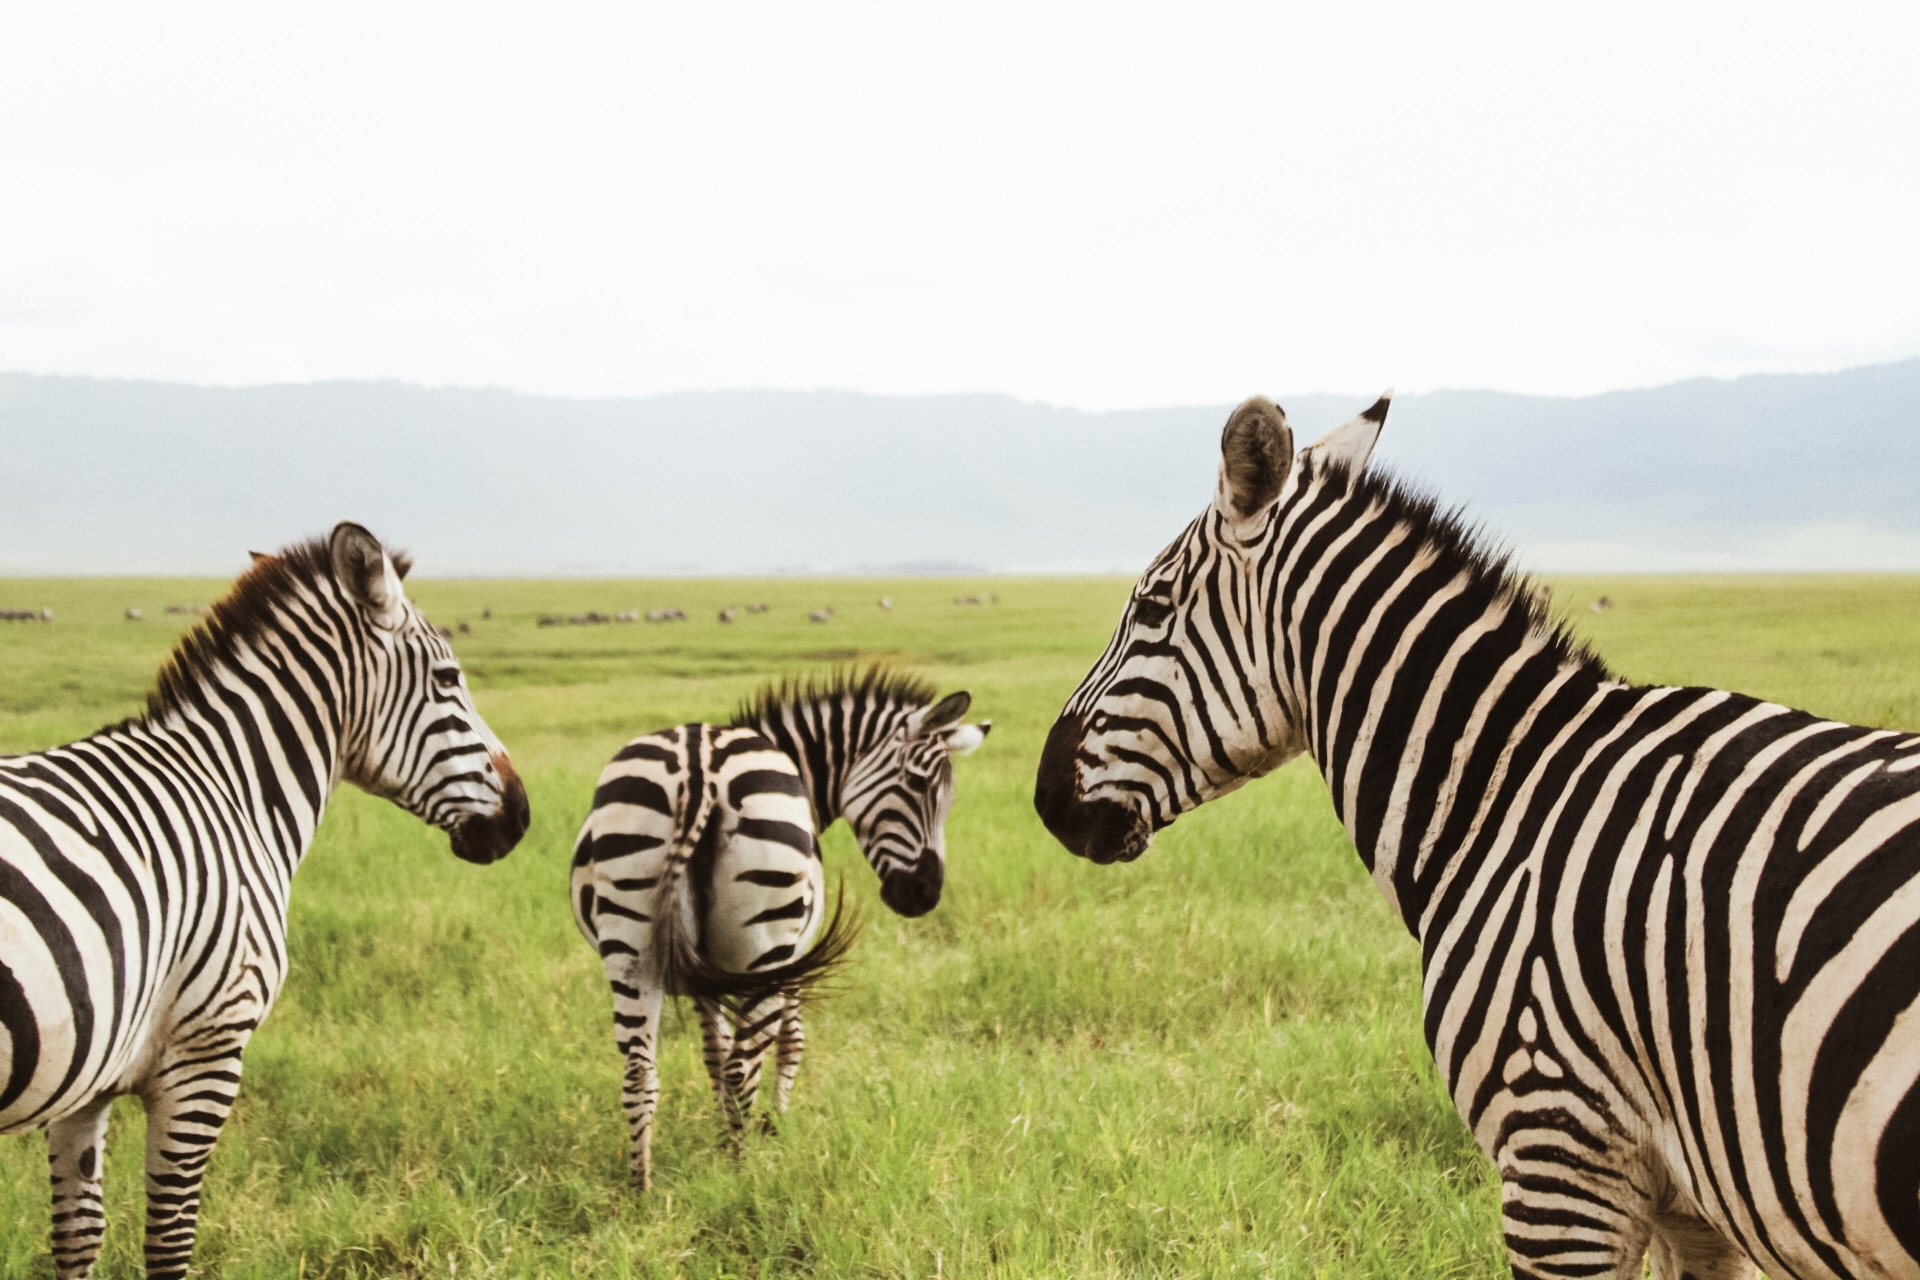 So many zebras everywhere! And they are so beautiful up close.